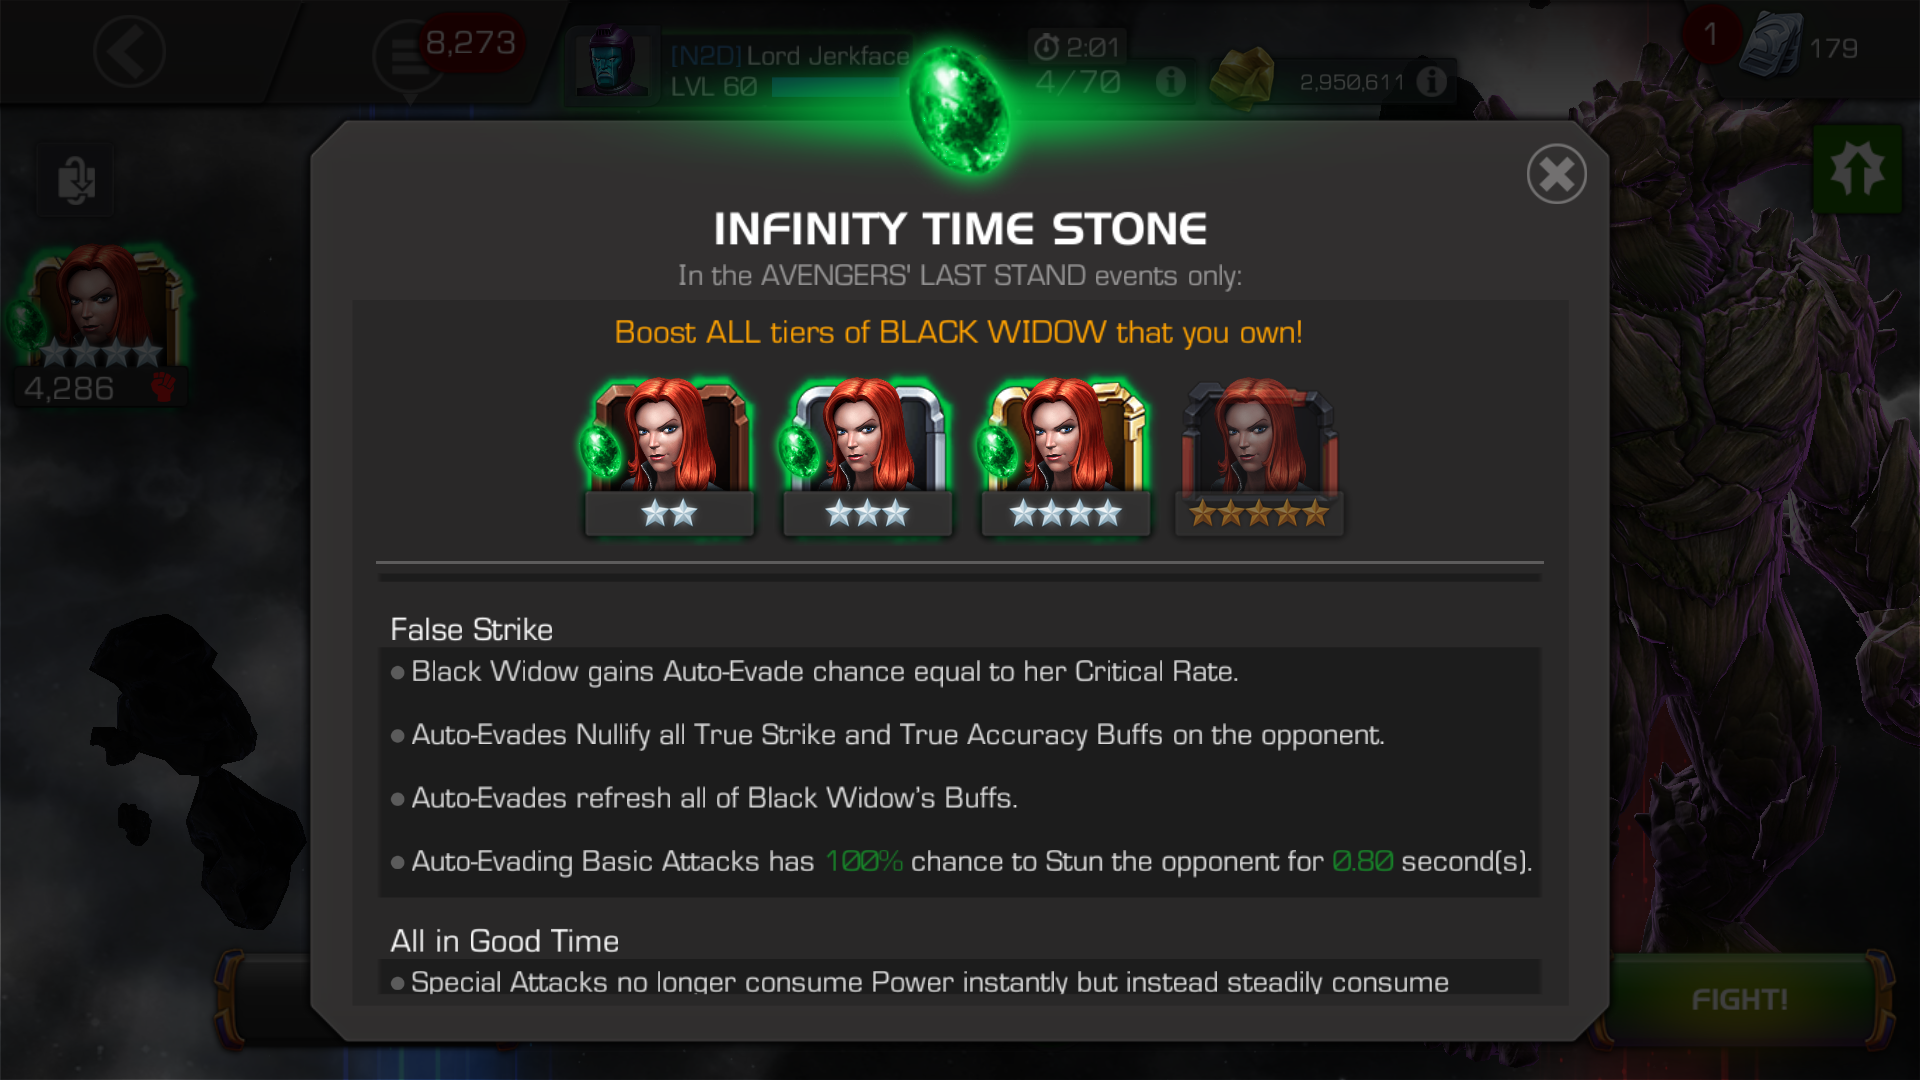 Is the Time stone bugged, or are these effects intended